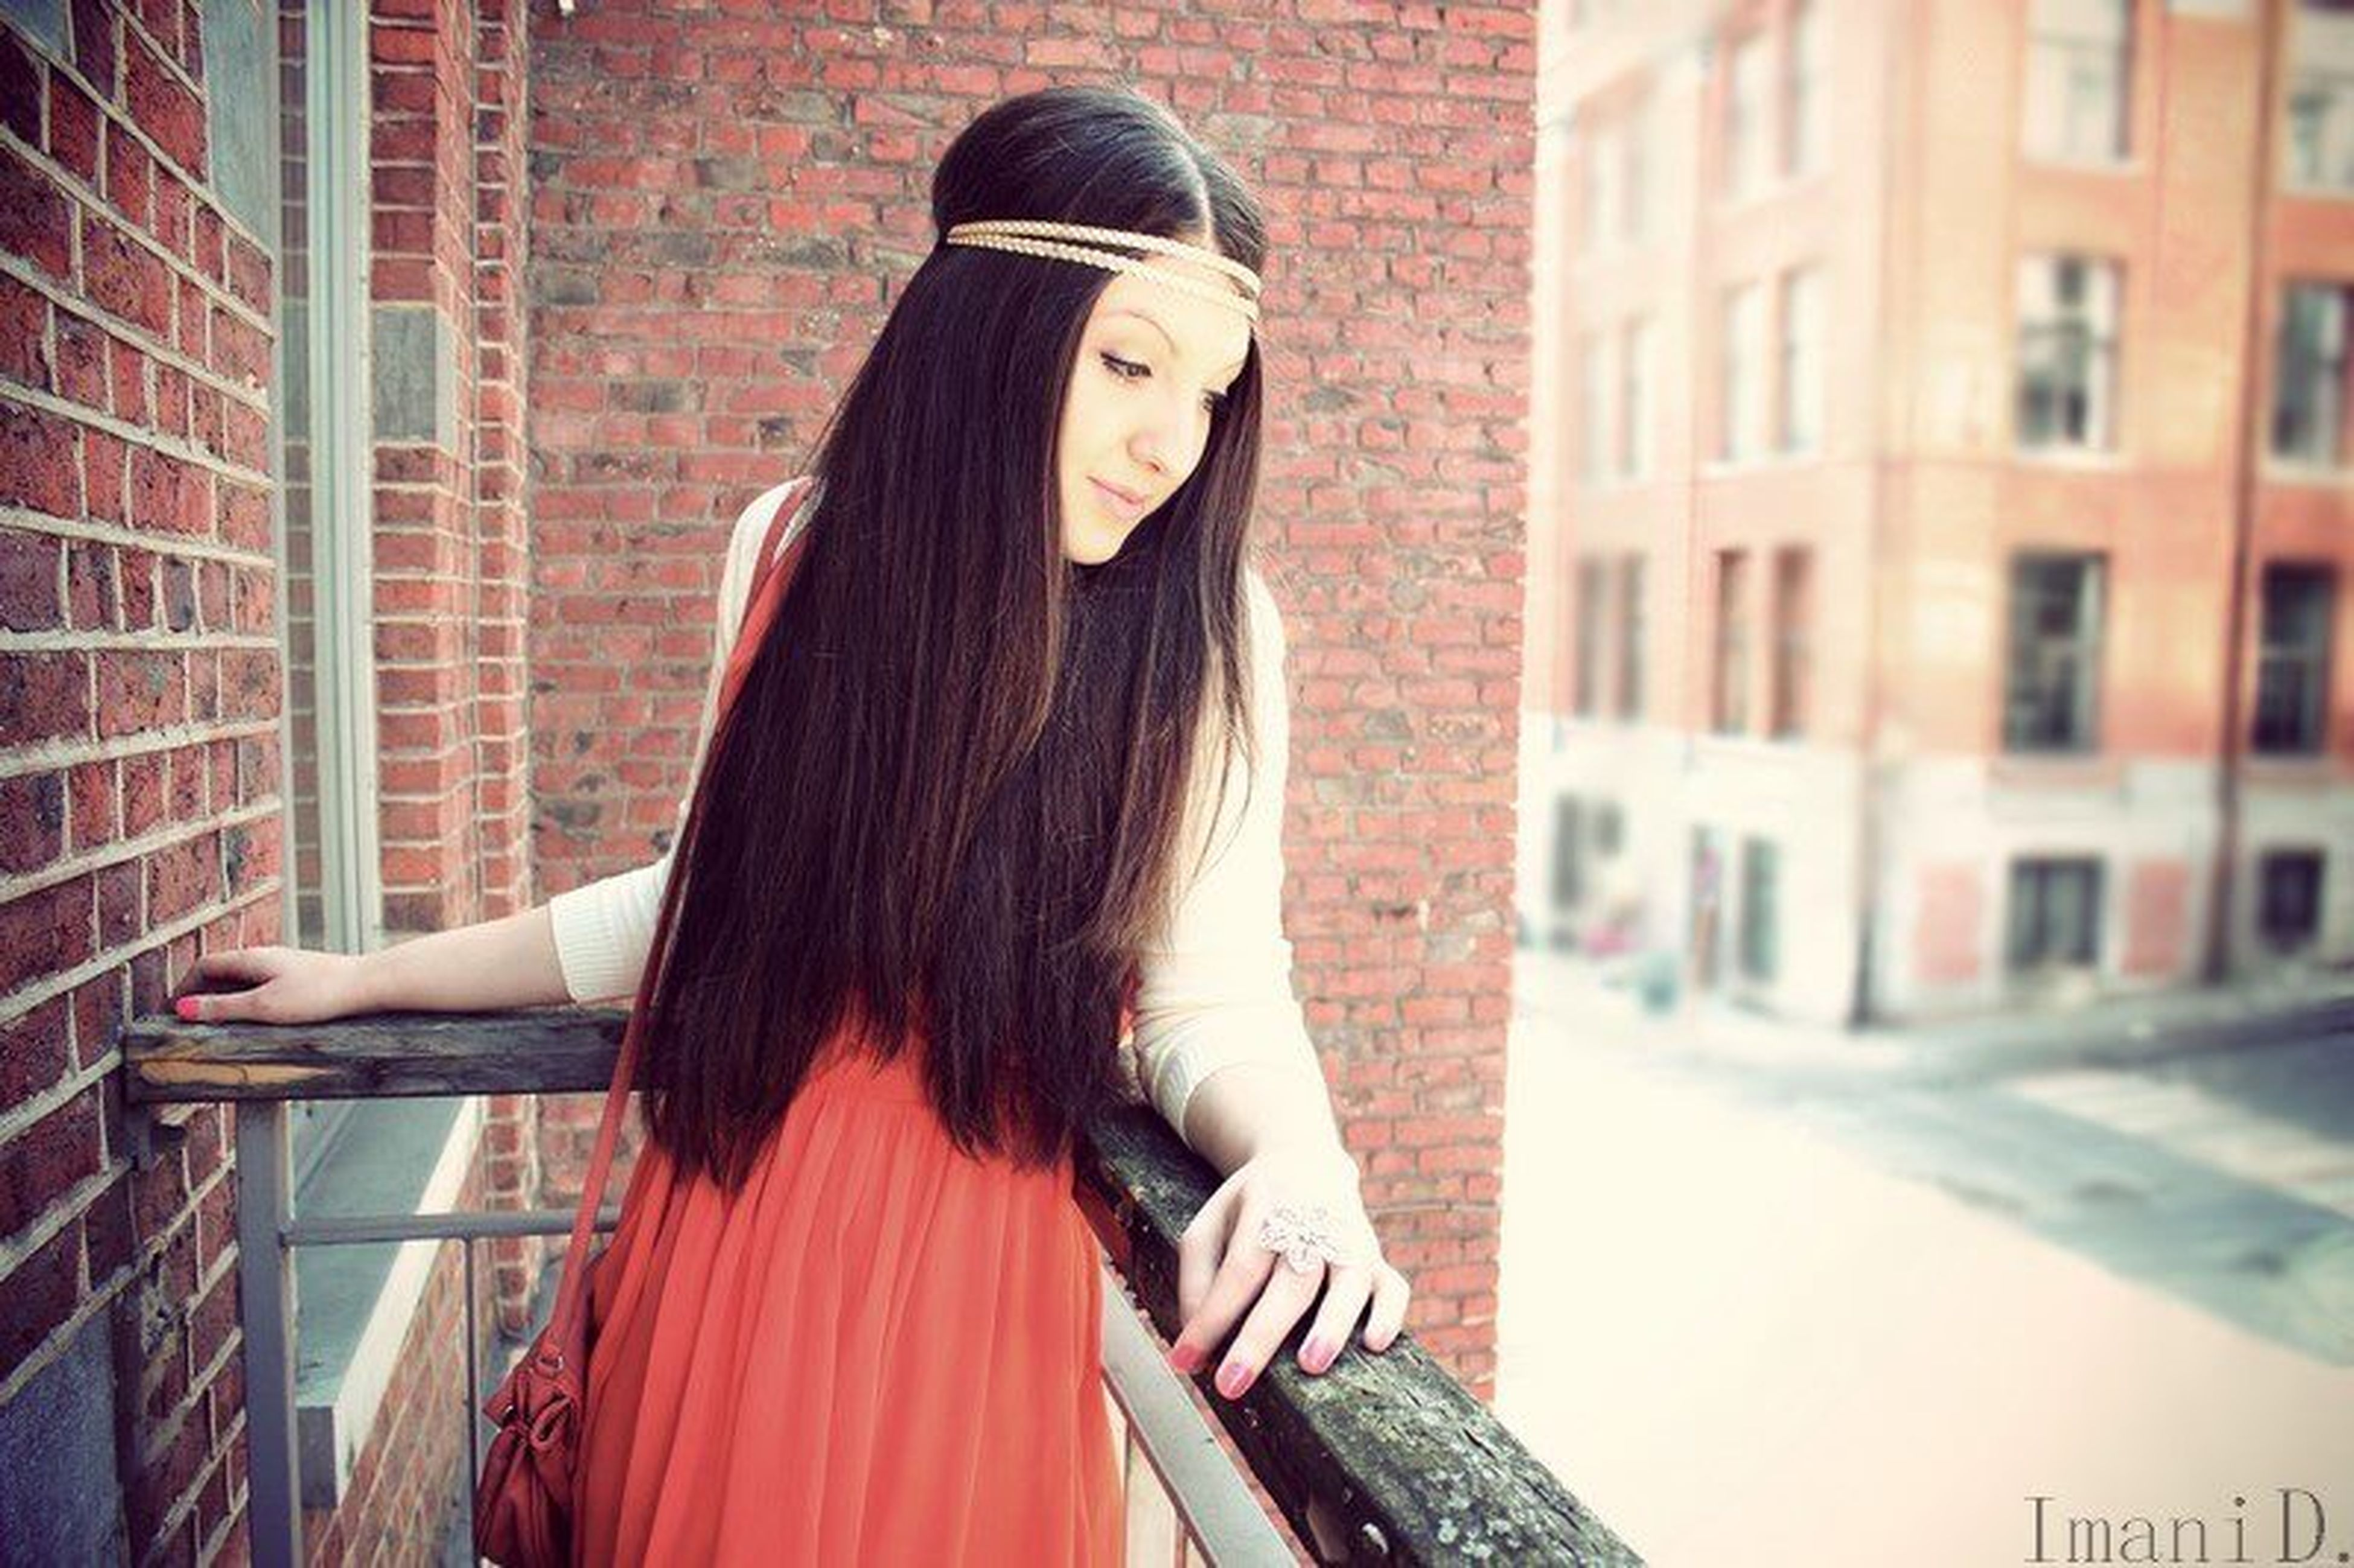 young adult, young women, building exterior, lifestyles, long hair, architecture, built structure, casual clothing, leisure activity, standing, three quarter length, side view, front view, person, brick wall, fashion